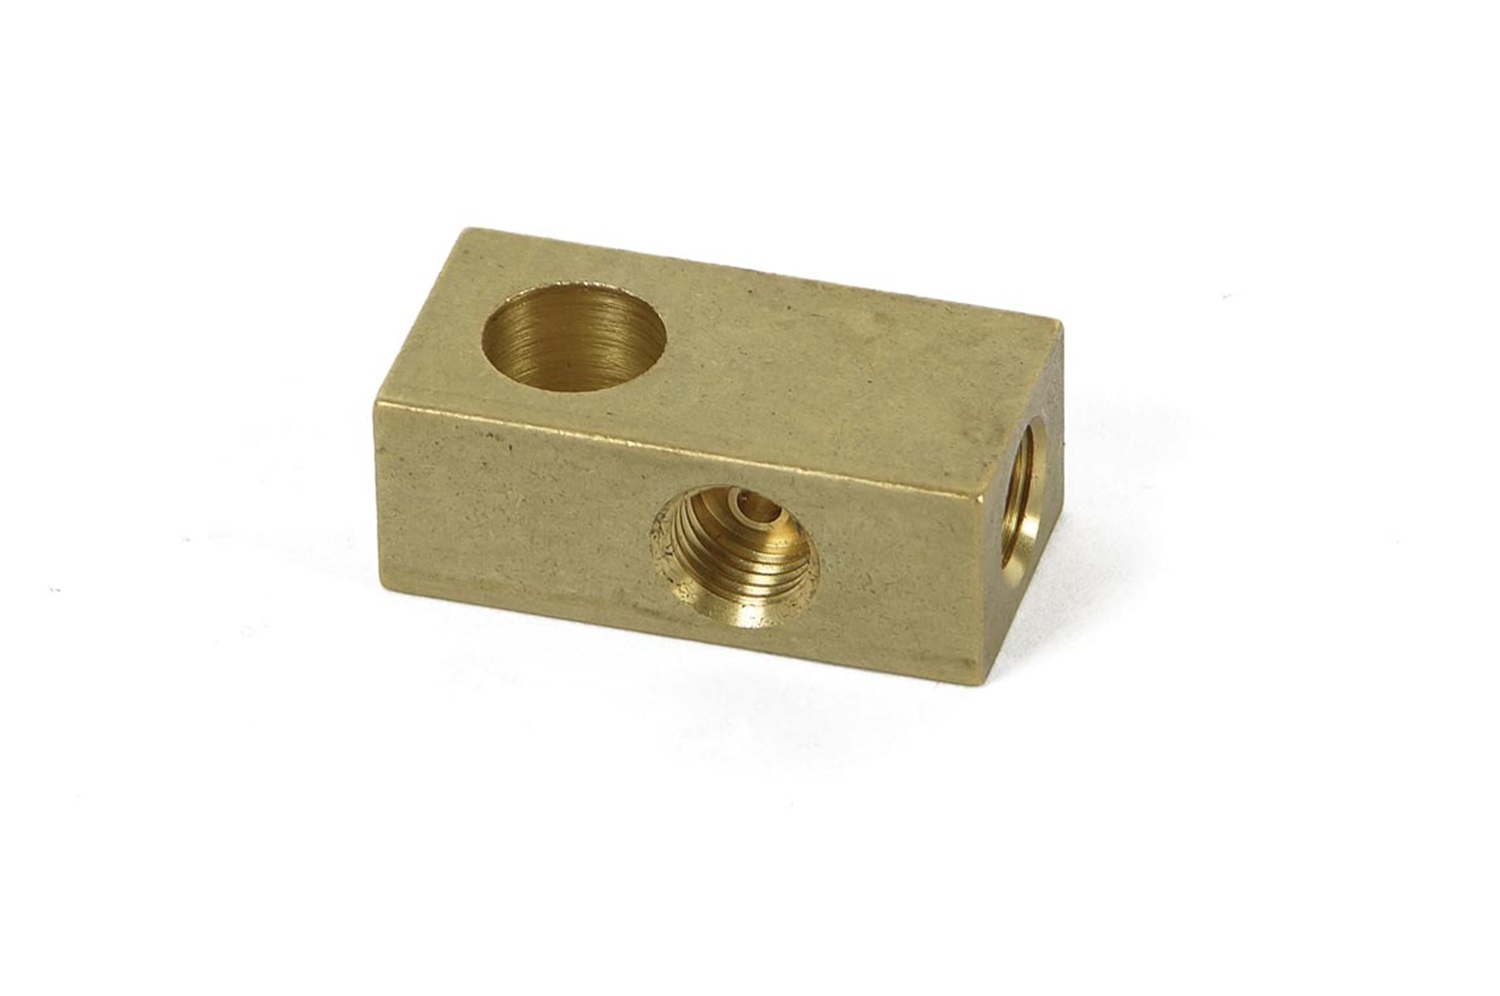 Earls Plumbing 972055ERLP Brass Inverted Flare Brake Adapter Tee